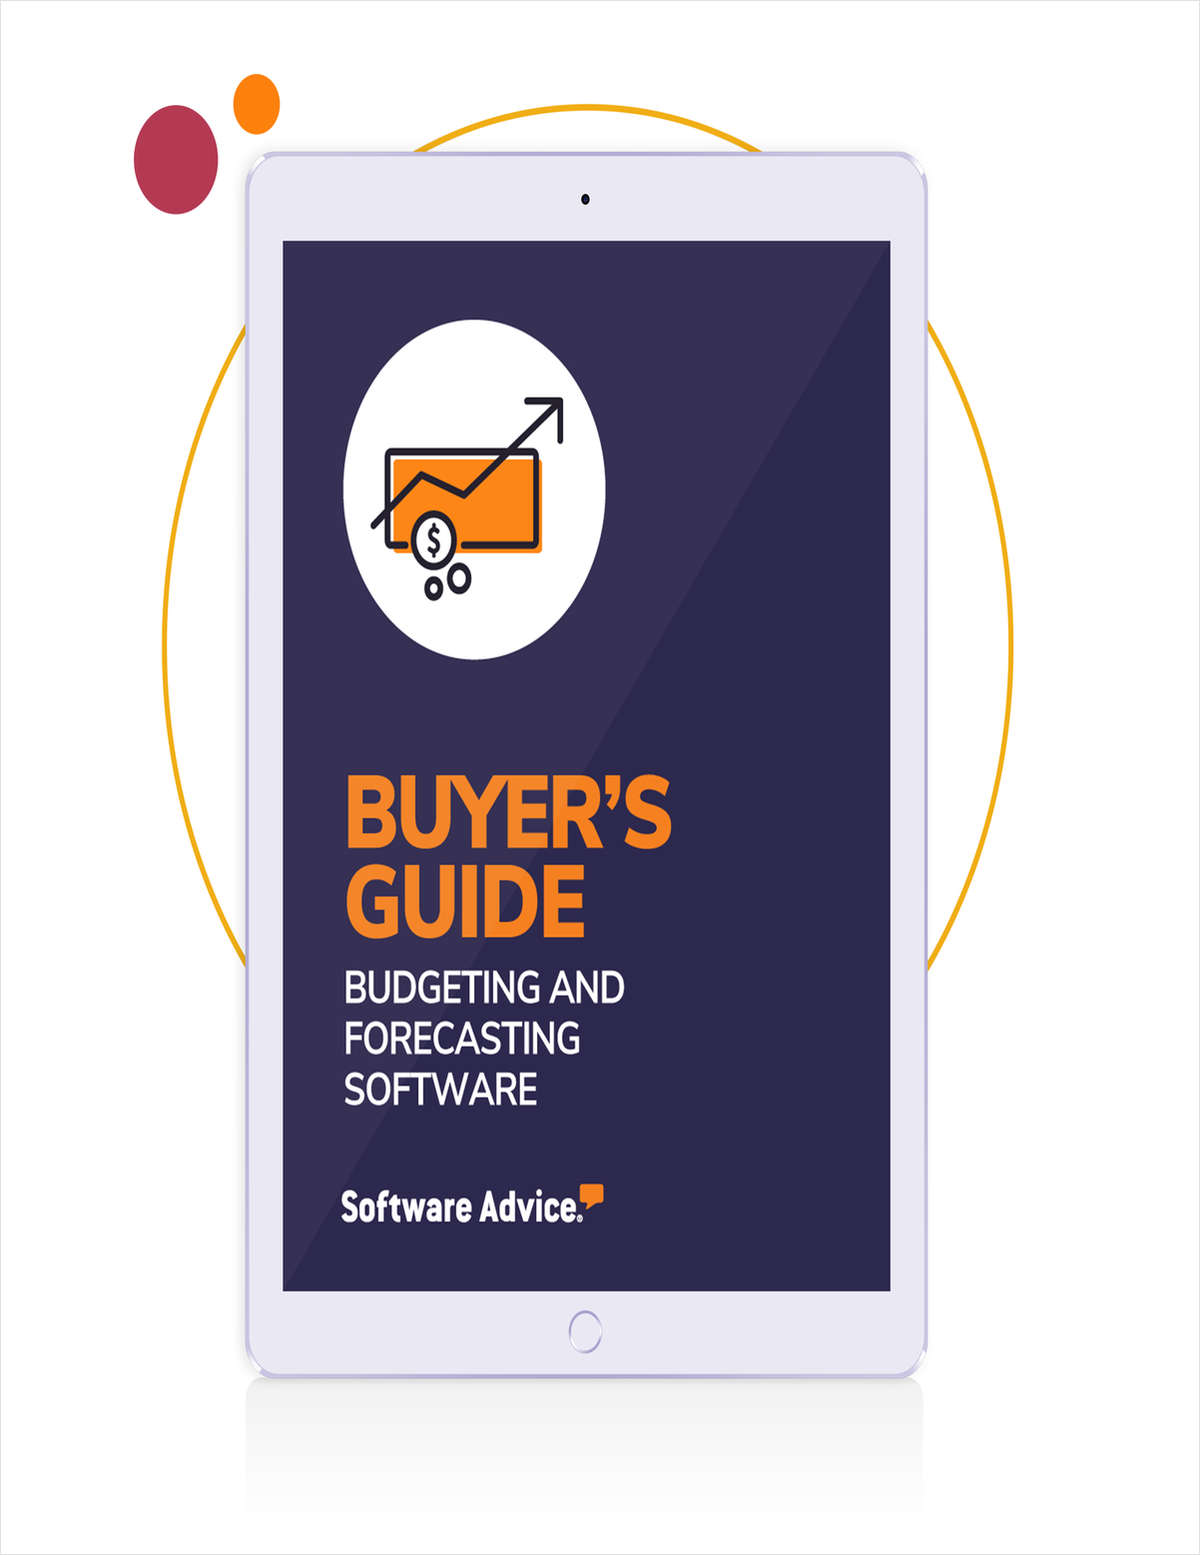 Find Your Perfect Budgeting & Forecasting Software Match in 2021 With This Guide